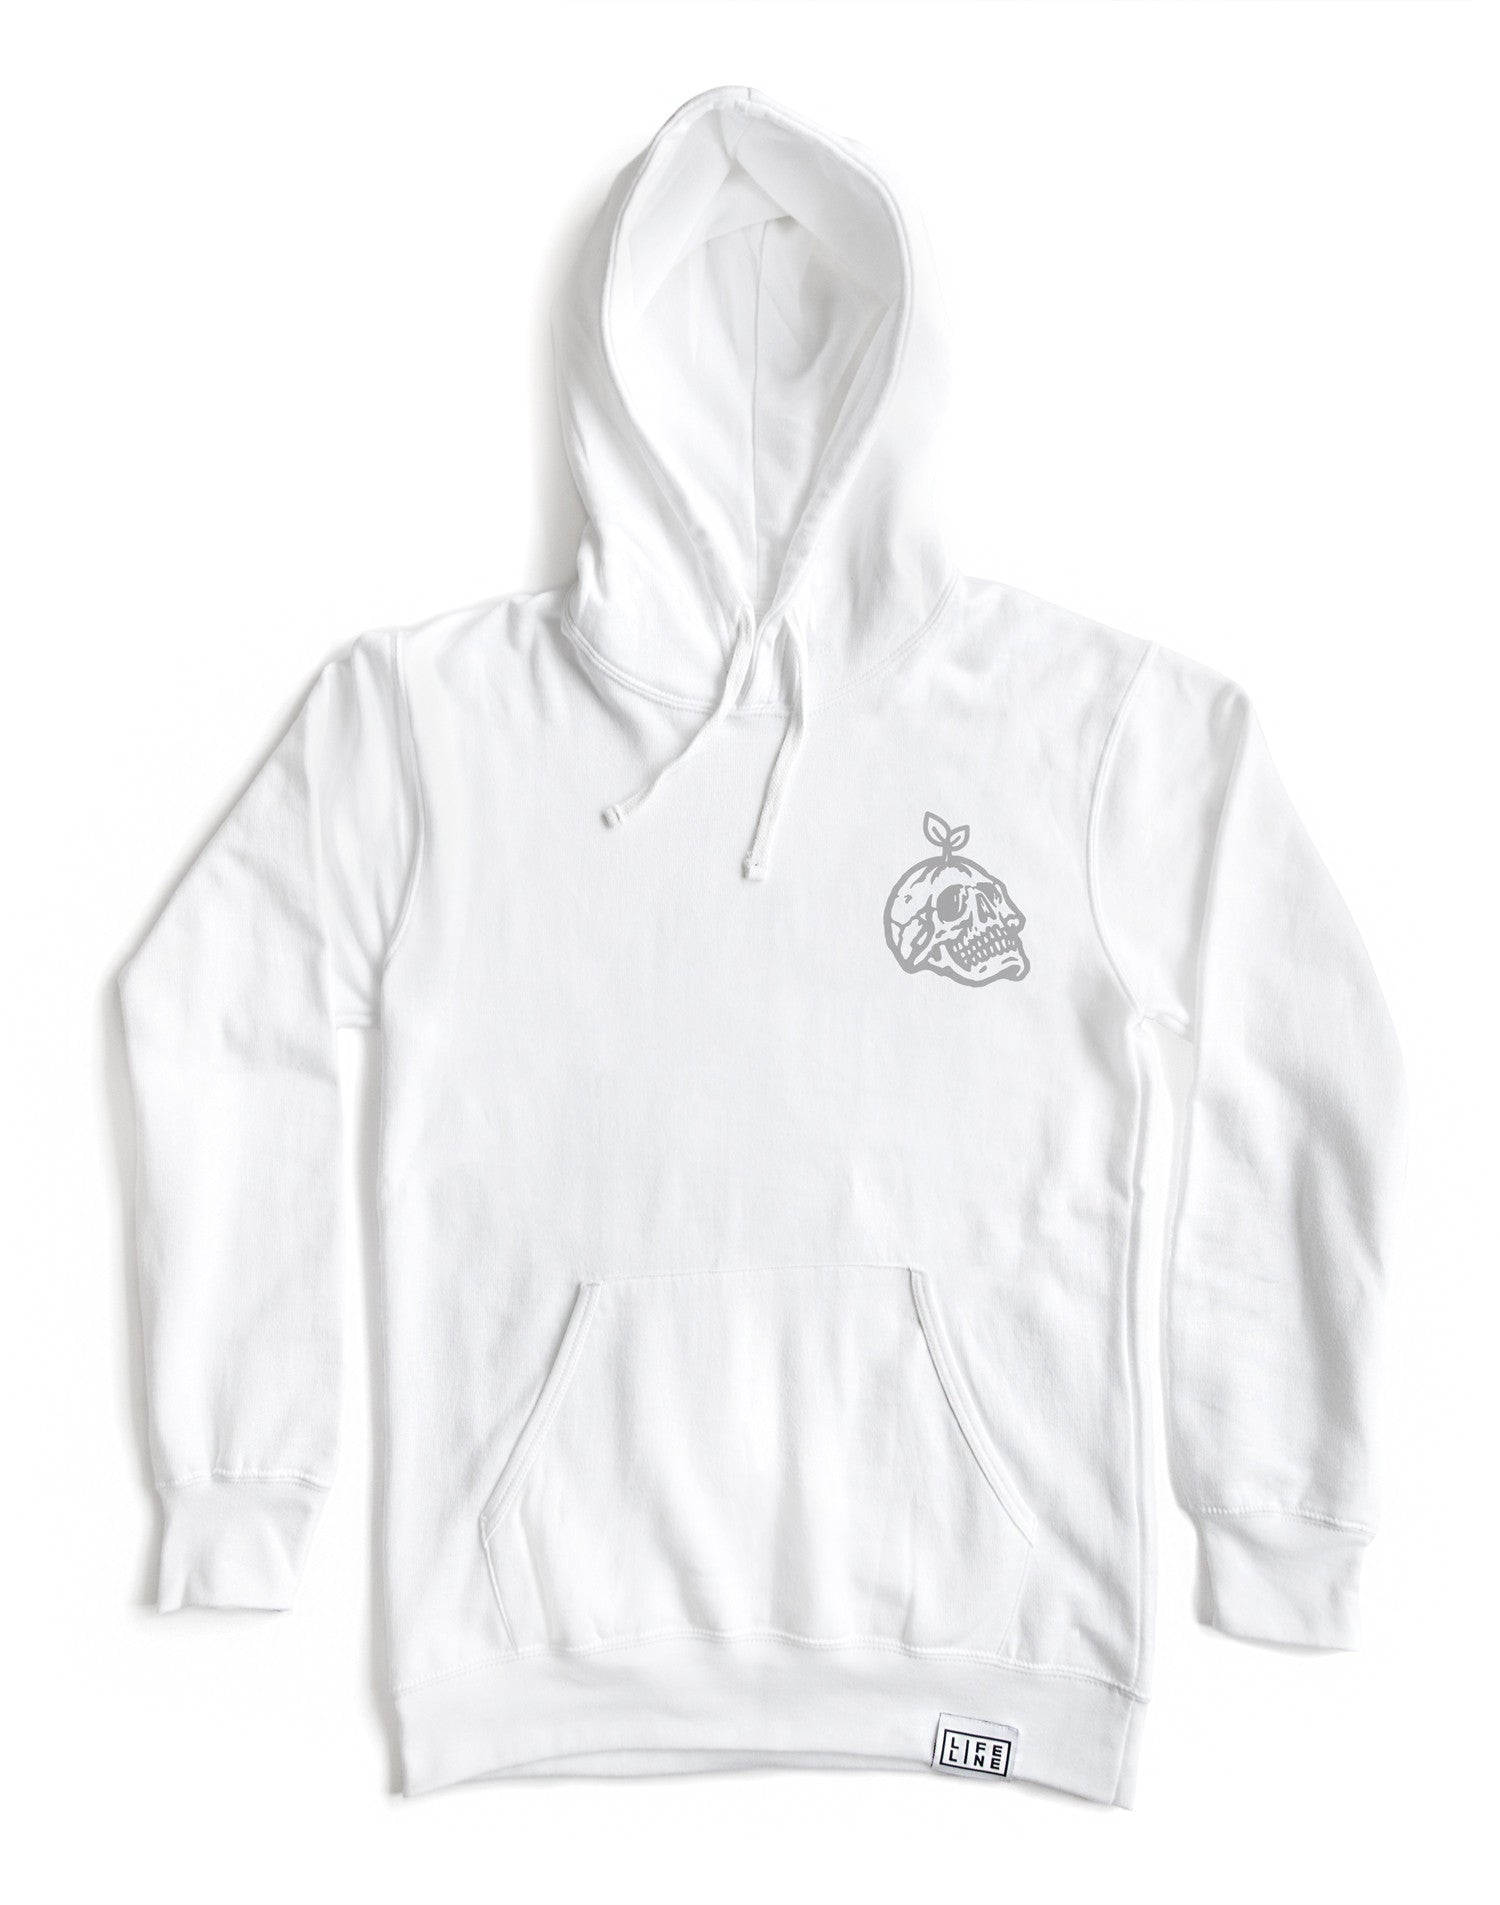 'Starting Over' Whiteout Edition Pullover Hoodie